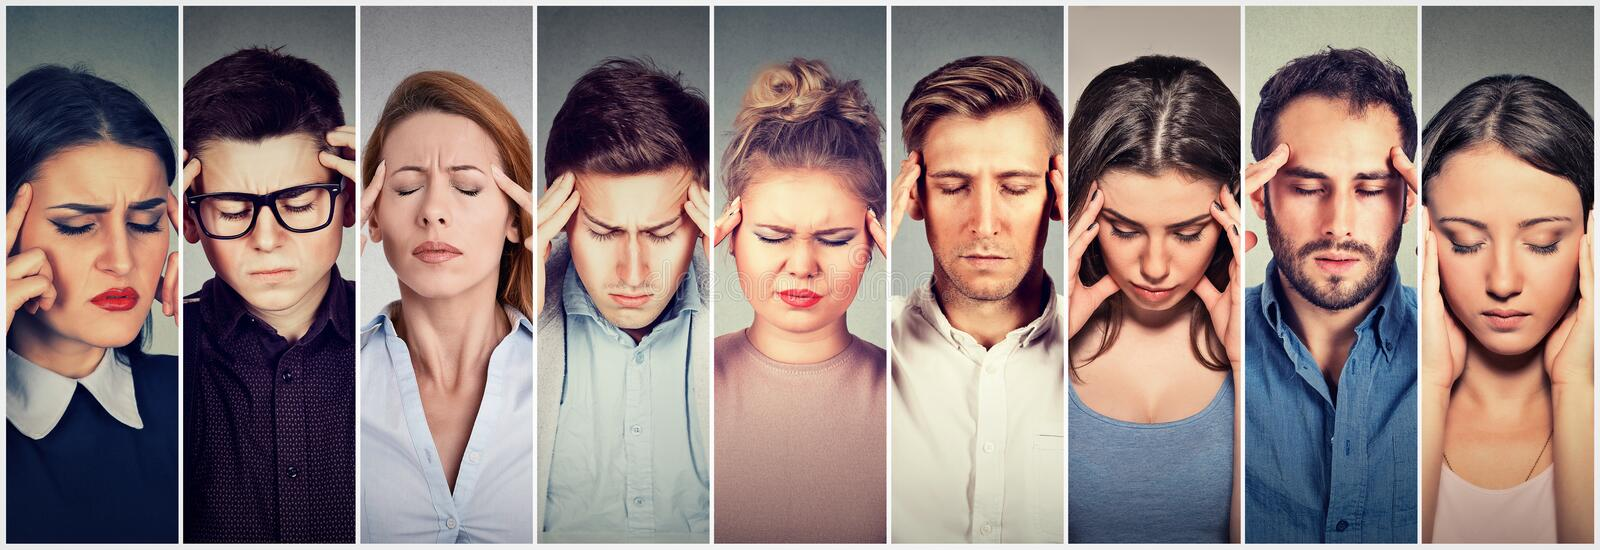 Group of stressed people having headache stock images